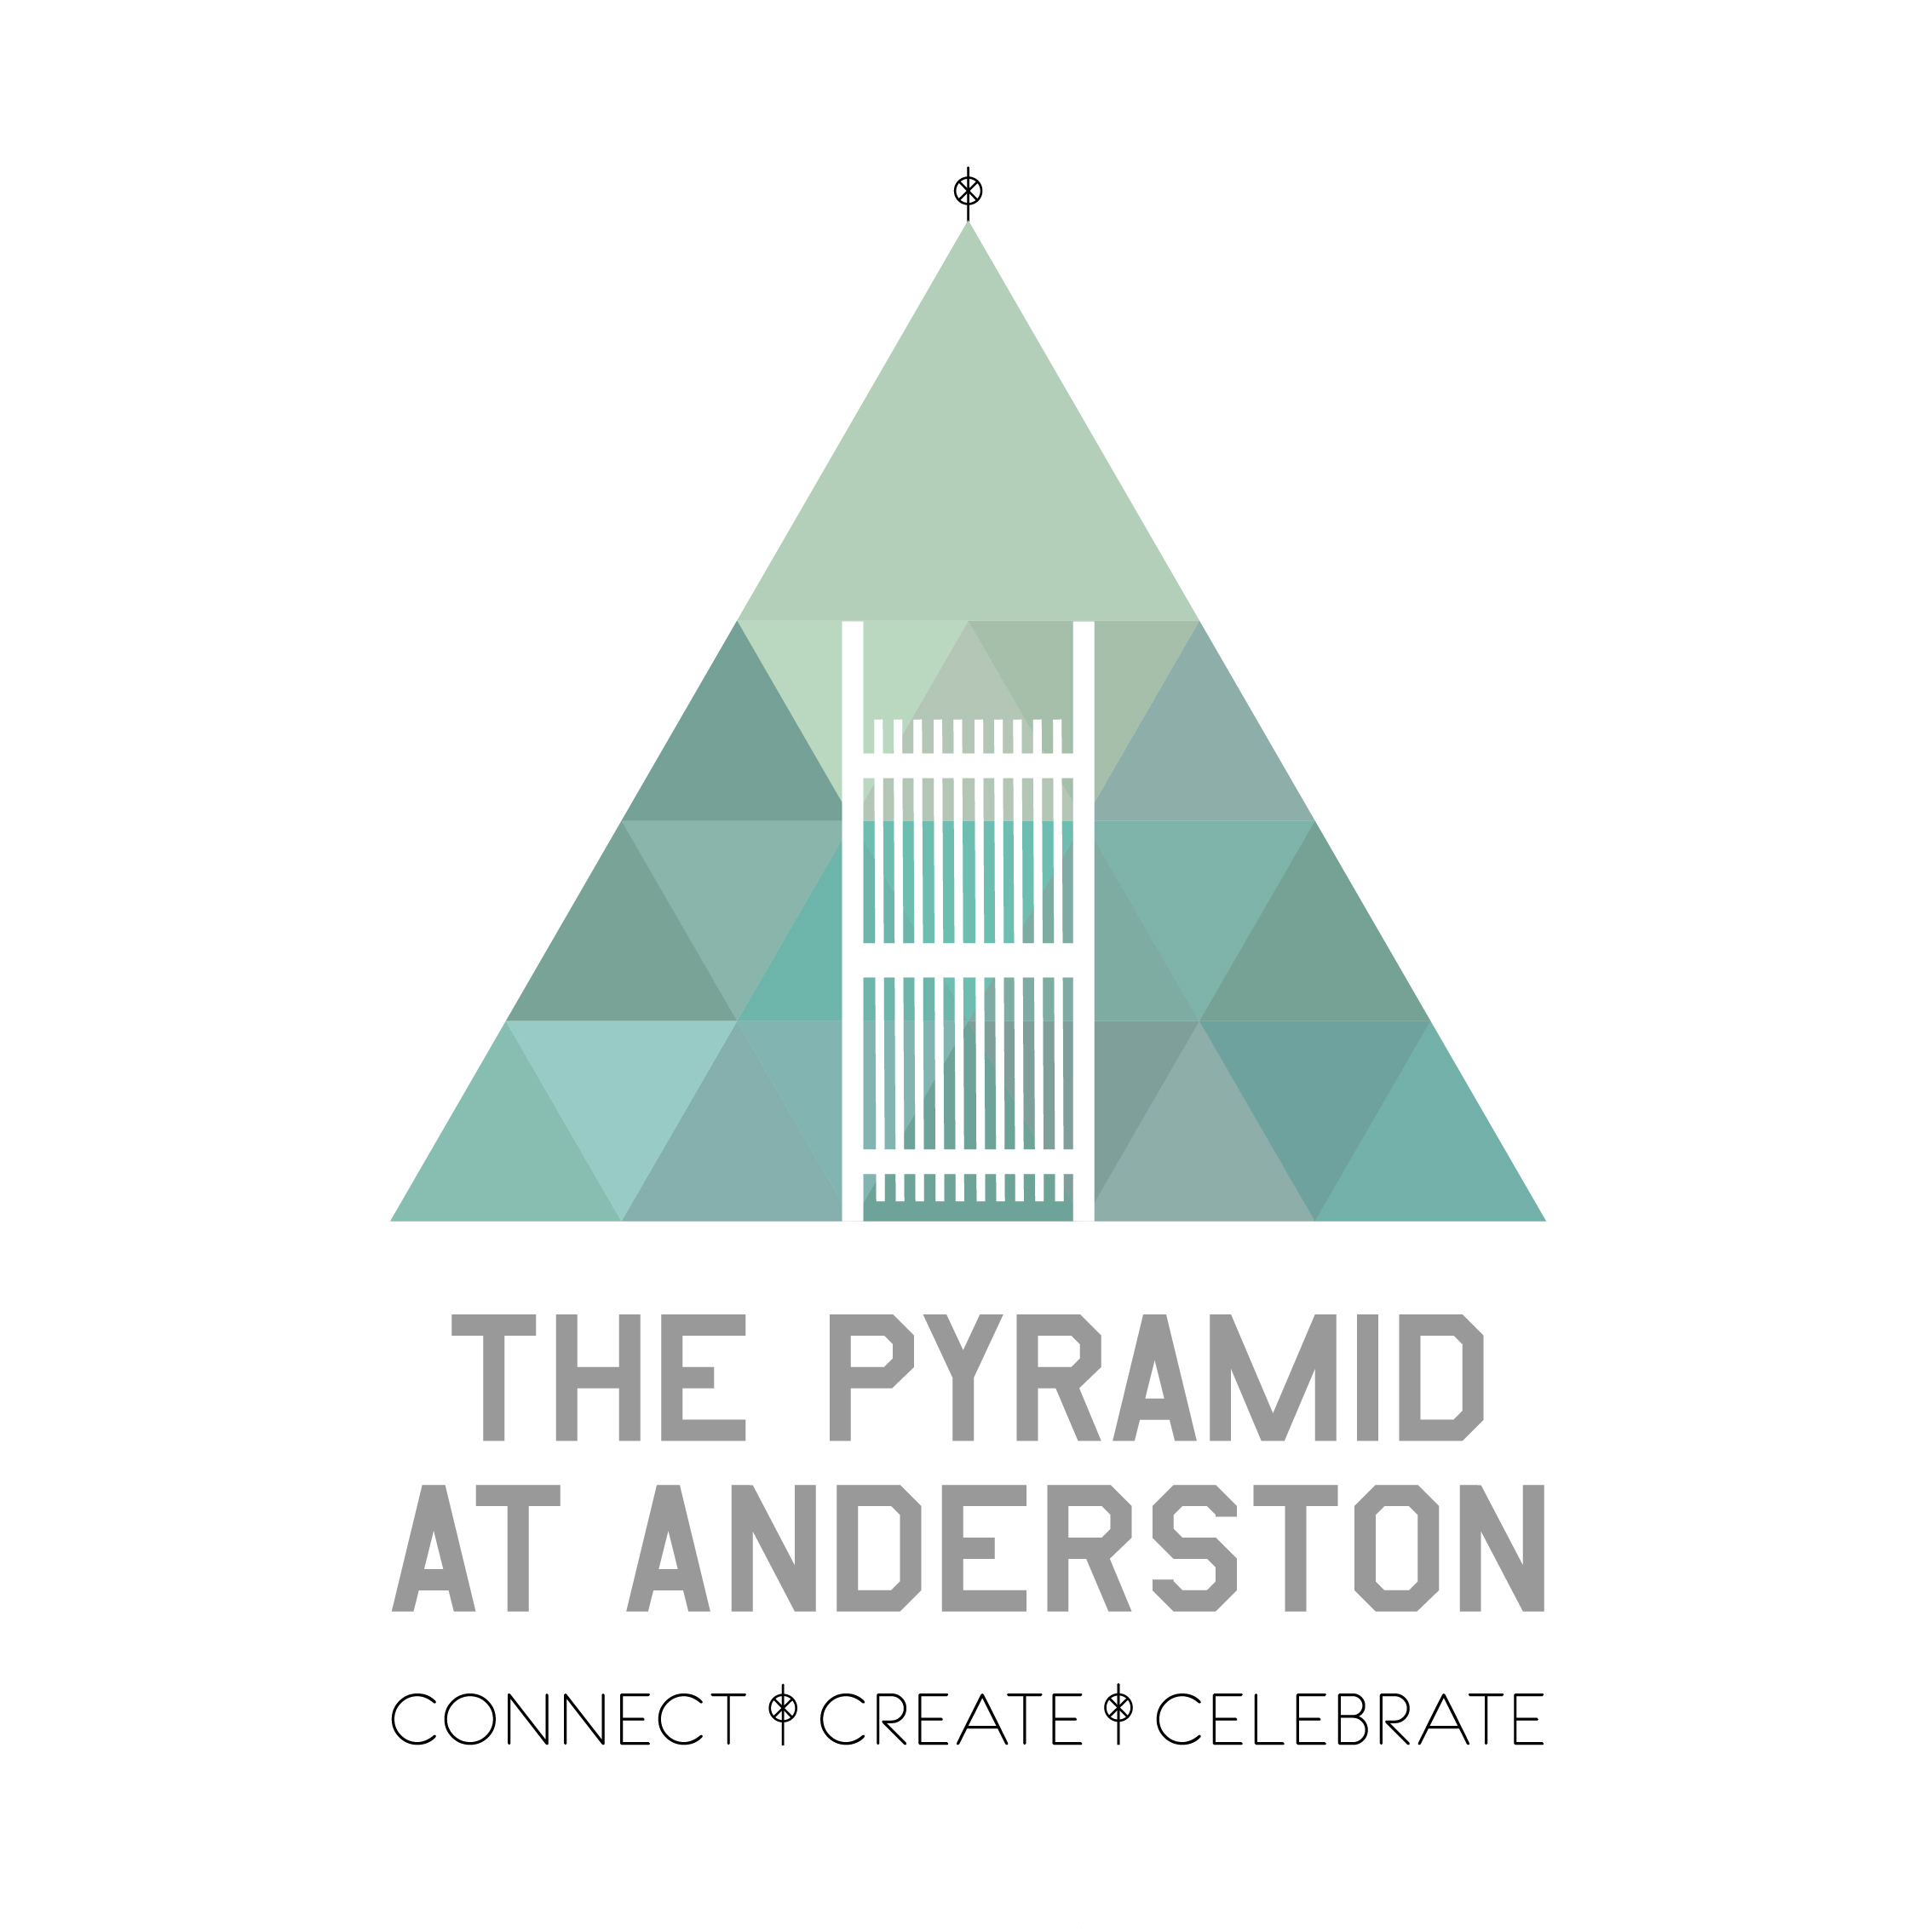 The Pyramid at Anderston